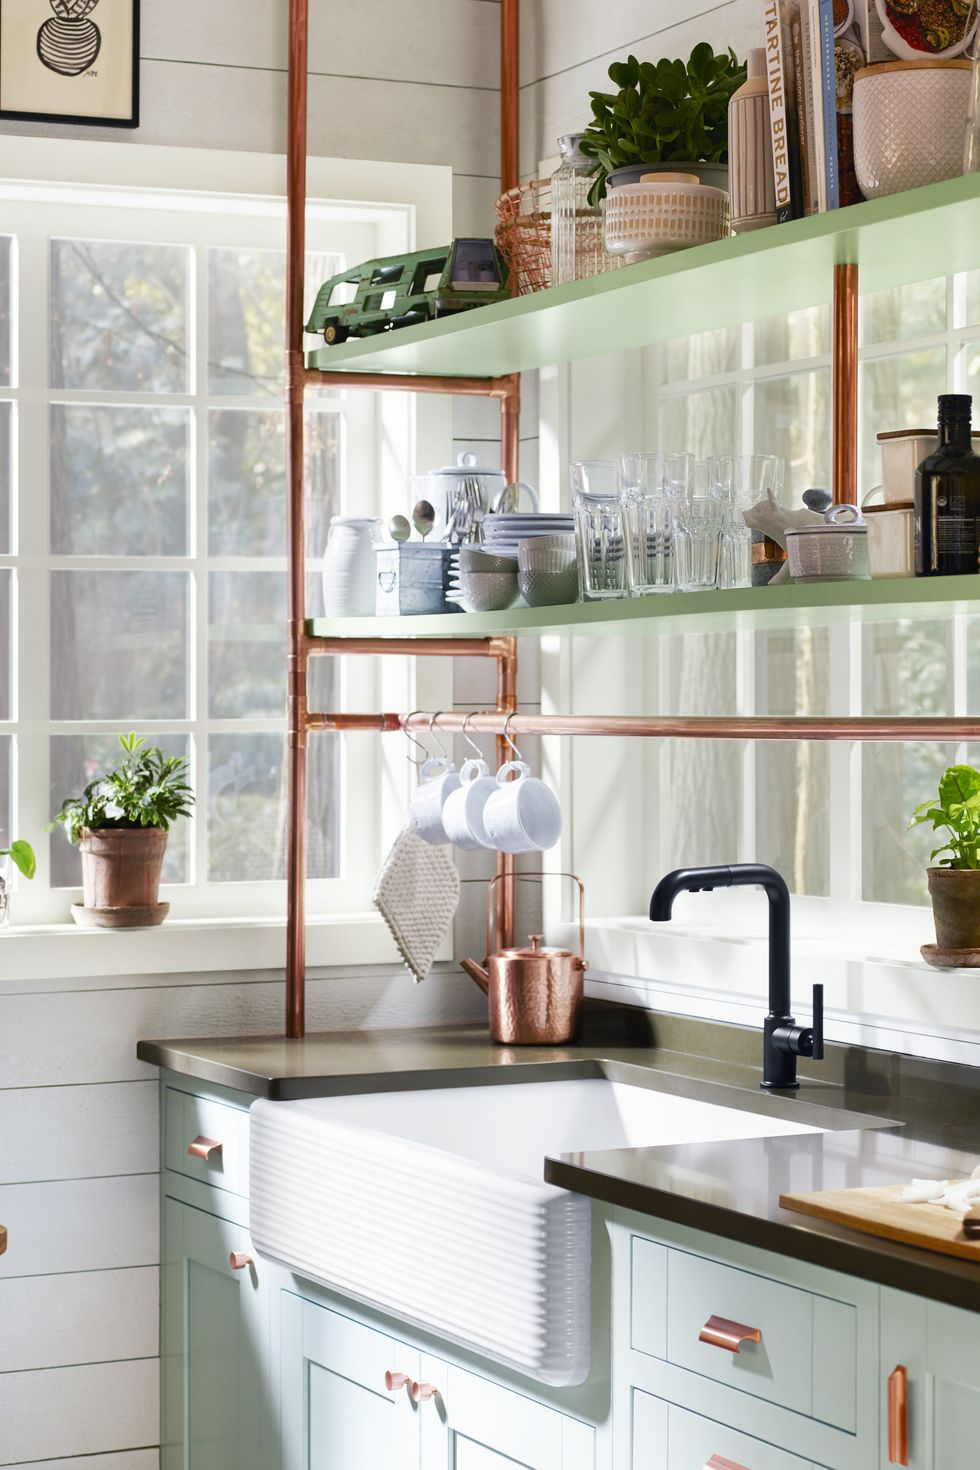 Green Silestone with copper tube cabinets and plants